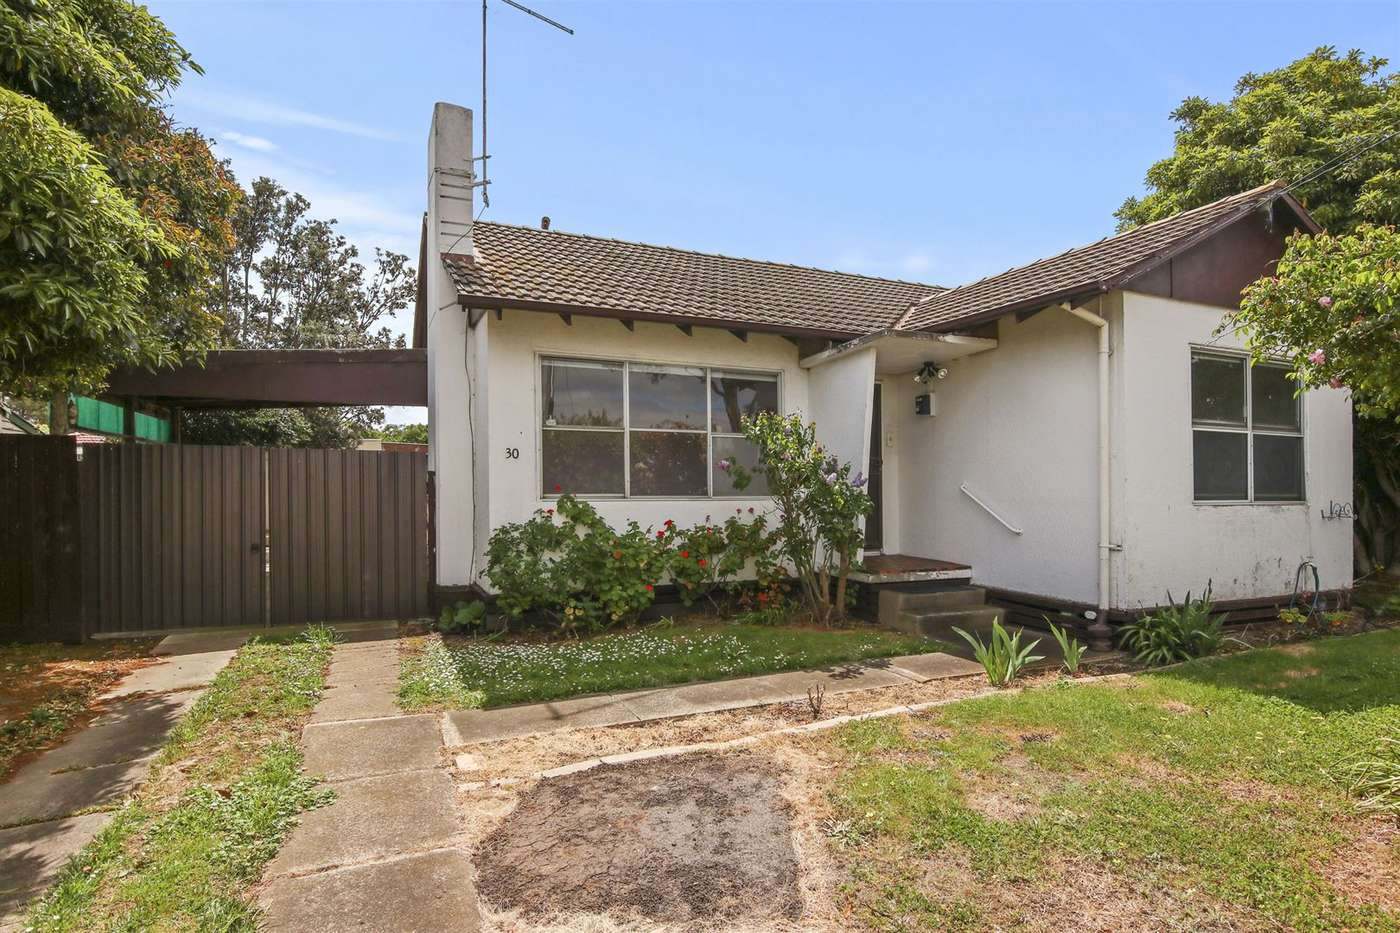 Main view of Homely house listing, 30 Canadian Parade, Corio, VIC 3214